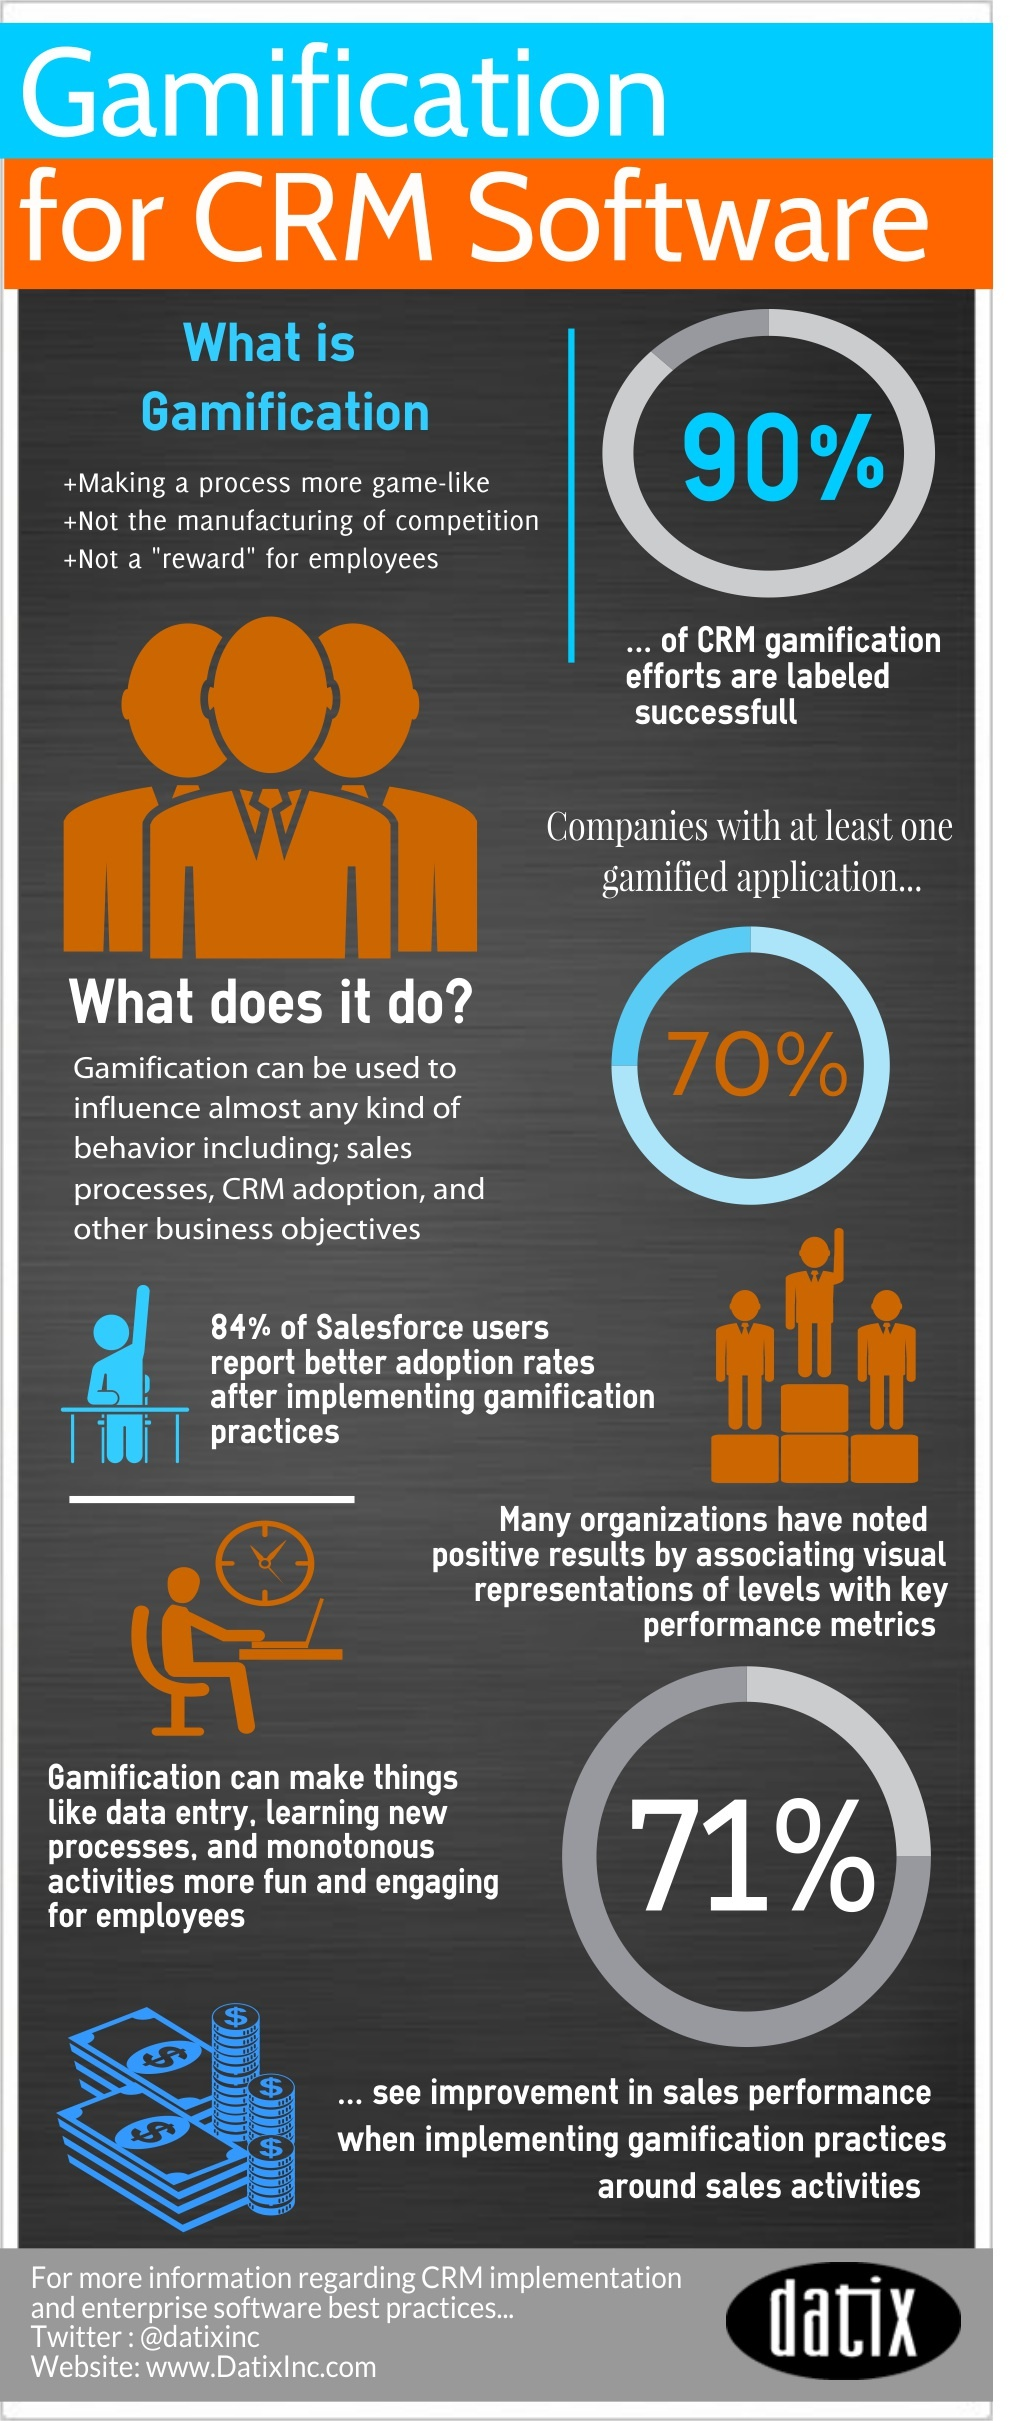 Why CRM Gamification Could Aid Your Business